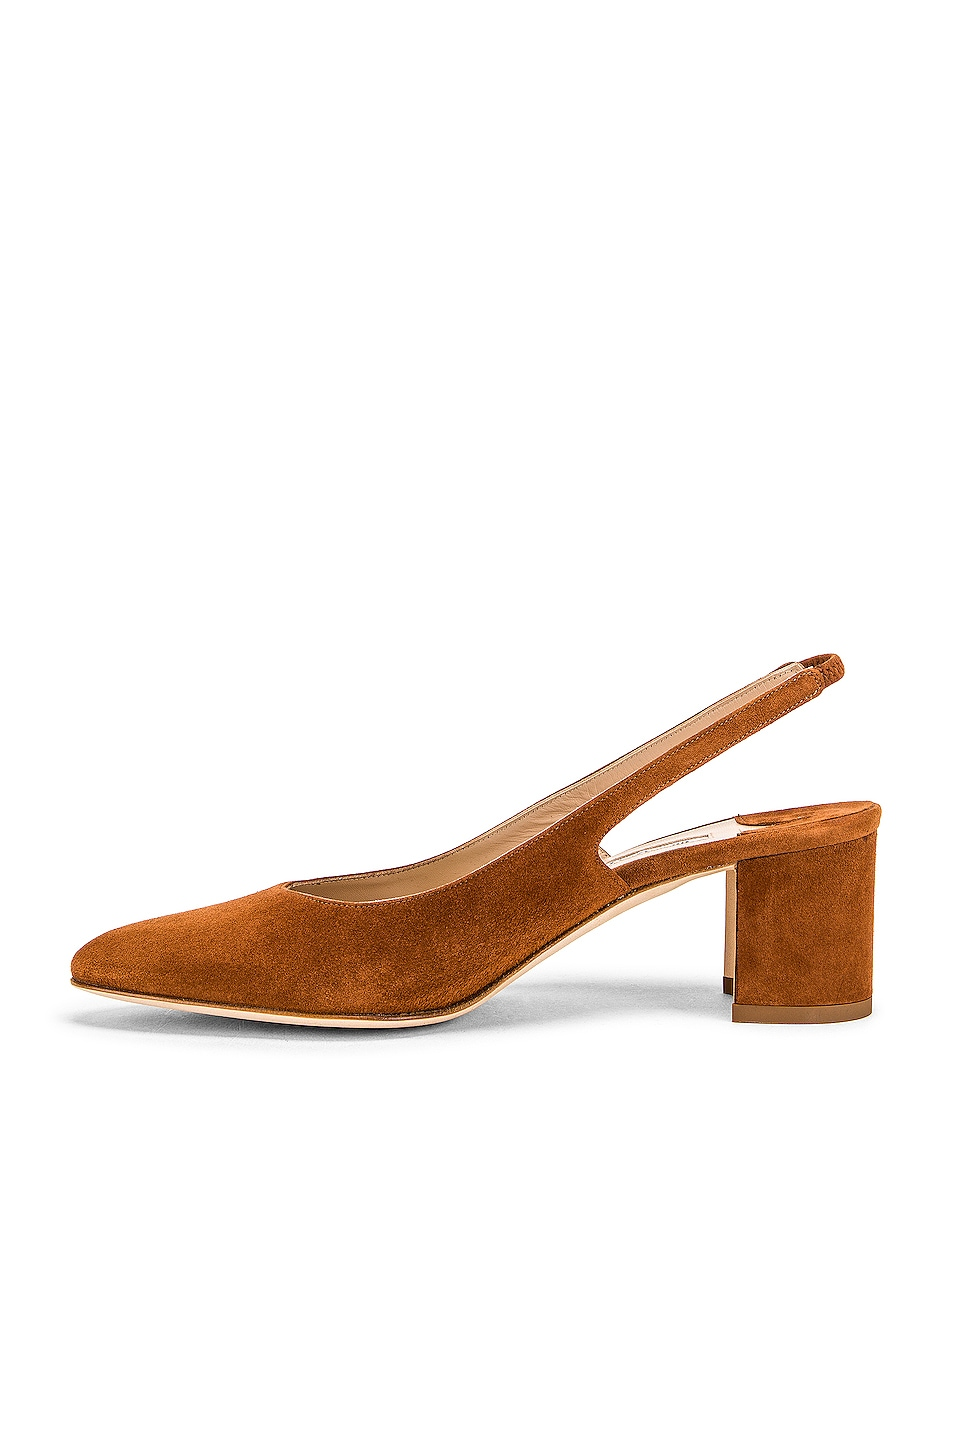 Image 5 of Manolo Blahnik Allura 50 Slingback Heel in Luggage